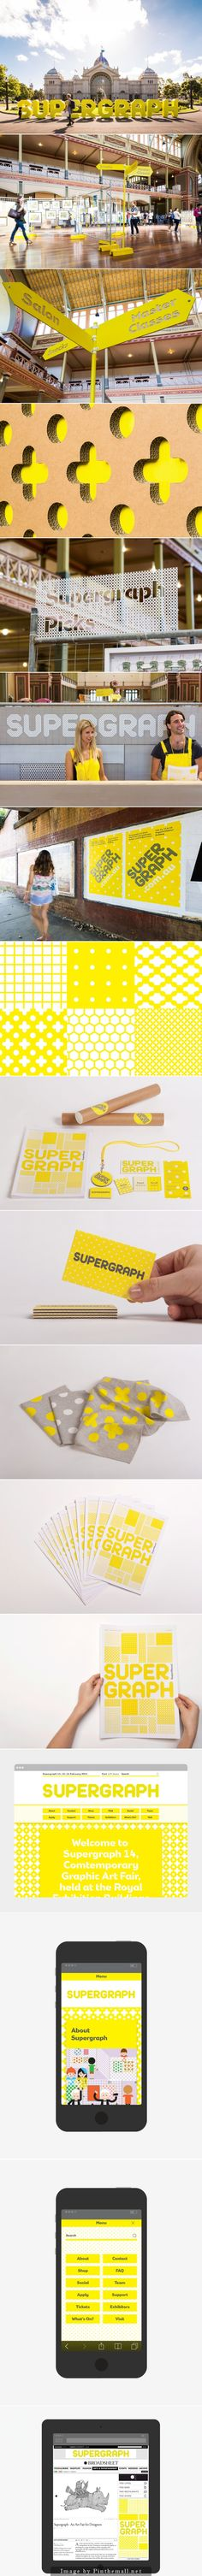 Supergraph identity design, environmental graphics, super graphics, signage